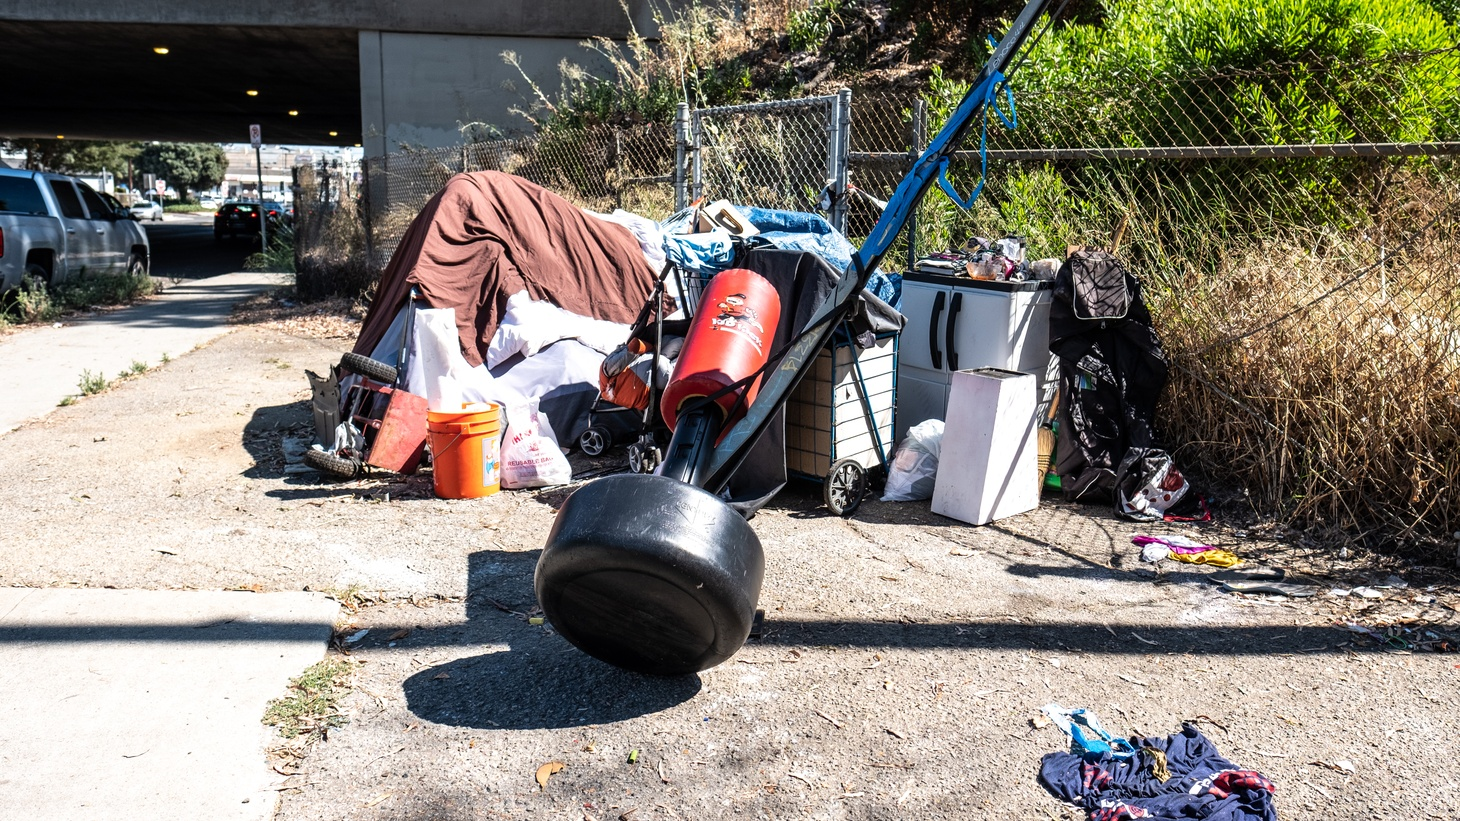 This homeless camp is just outside a freeway overpass in Santa Monica. A federal judge has ordered that homeless encampments must be moved if they are near freeway overpasses.